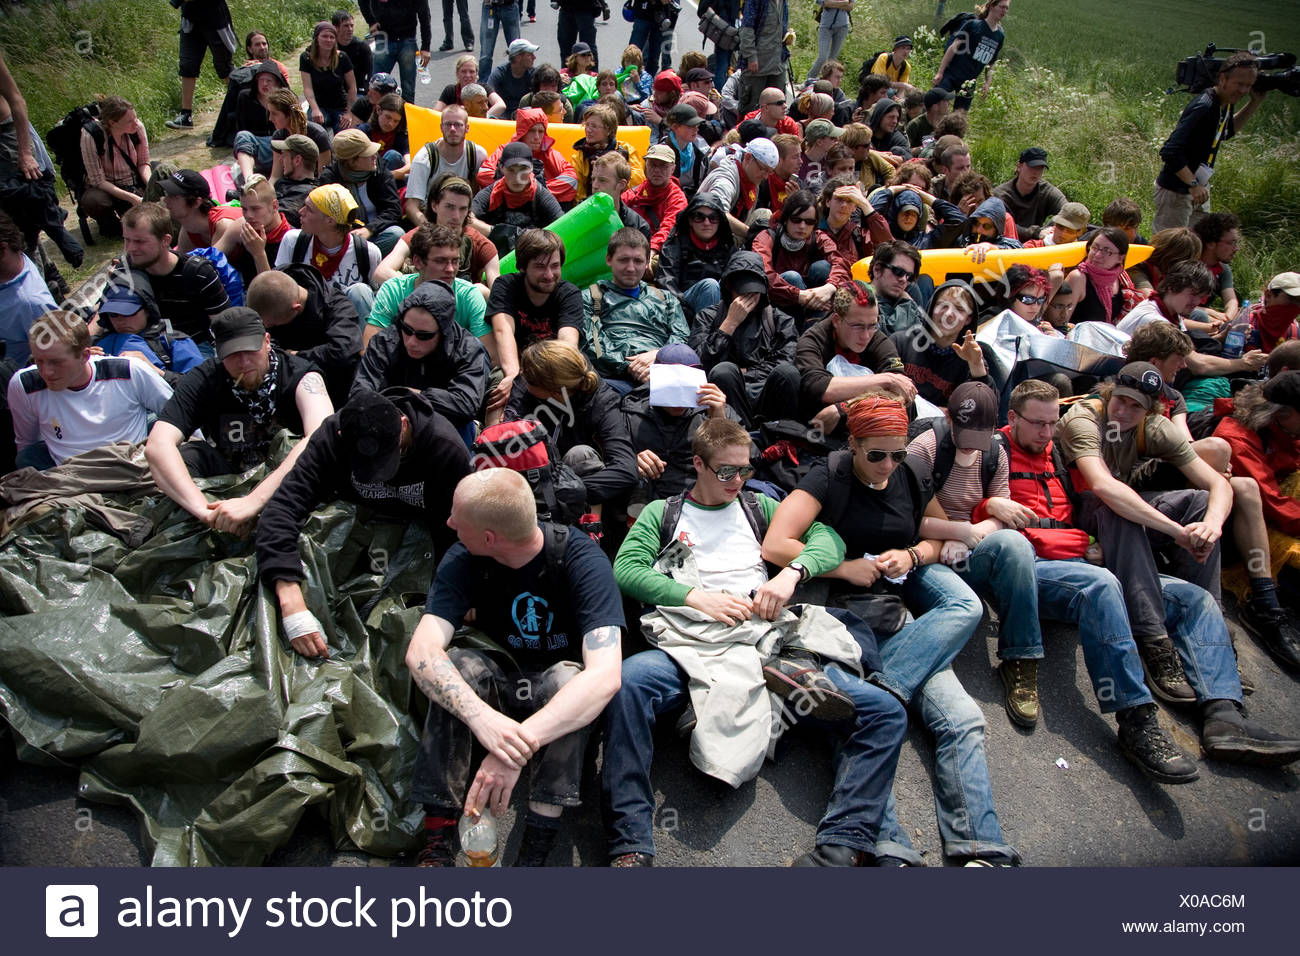 Protesters against the G-8 summit, Rostock, Heiligendamm, Mecklenburg-Western Pomerania, Germany Stock Photo